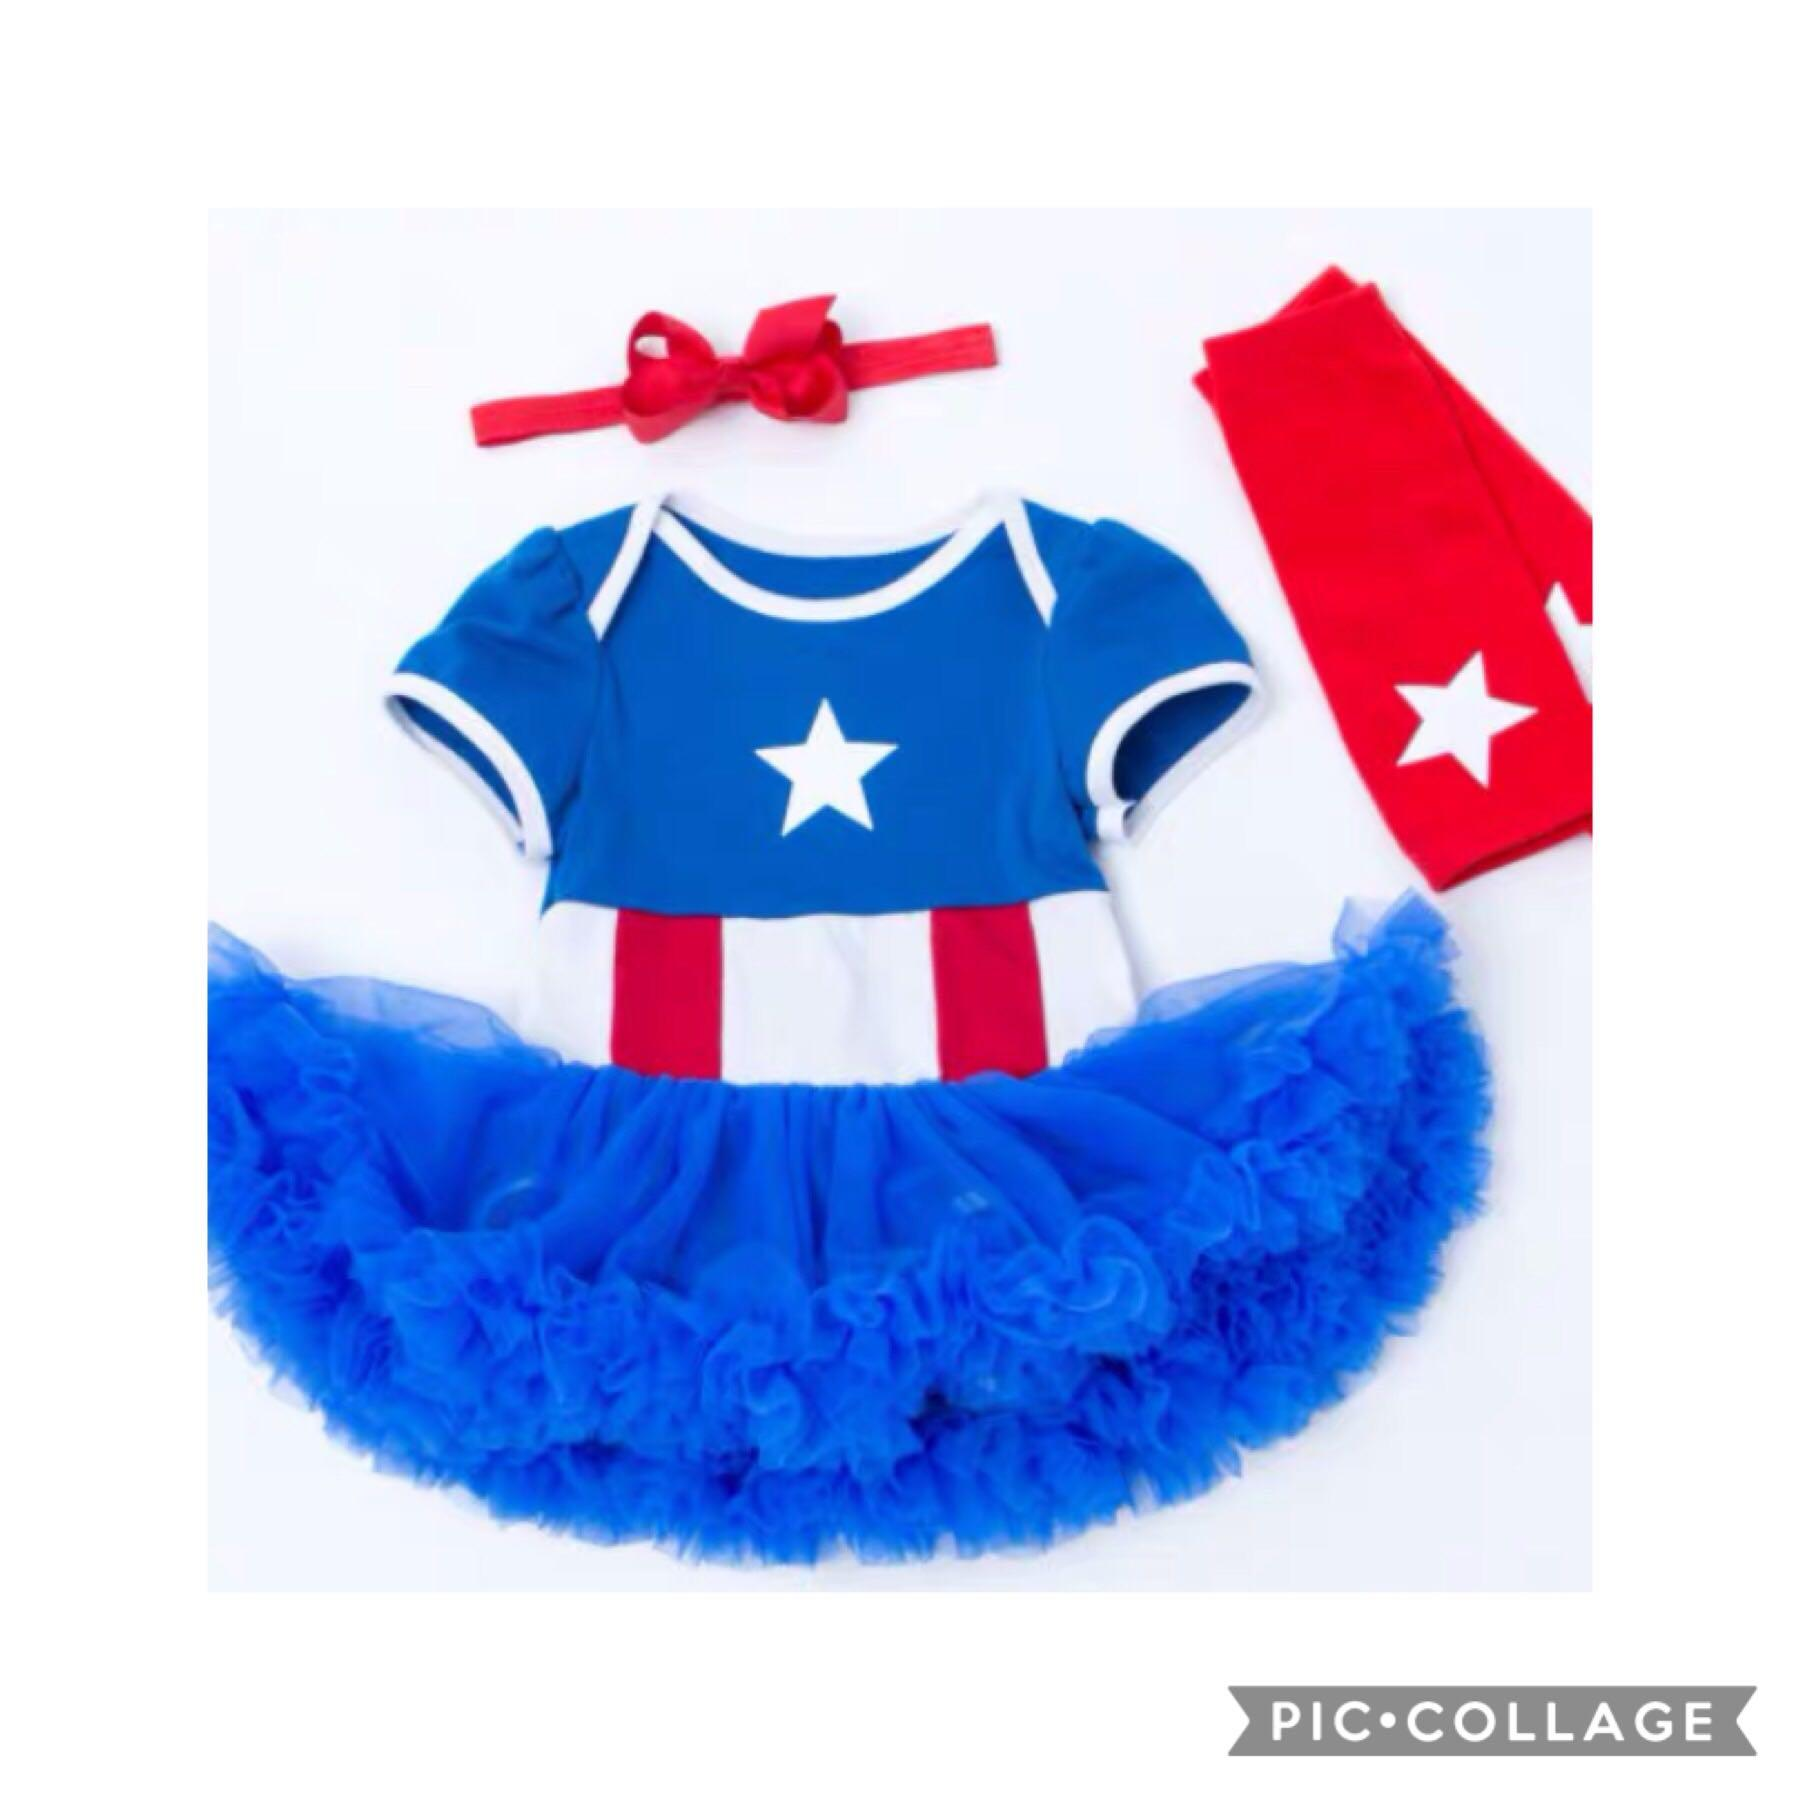 In Stock Baby Captain America Costume Captain Marvel Costume Girl Toddler Superhero Costume Baby Girl Superhero Costume Babies Kids Babies Apparel On Carousell And, for captain marvel, he led a team of equally talented artists including jackson sze, ian joyner, anthony francisco, adam ross, tully summers because captain marvel is part of an elite military force, the kree, the design team wanted to create a military space suit that looked like it could endure. in stock baby captain america costume captain marvel costume girl toddler superhero costume baby girl superhero costume